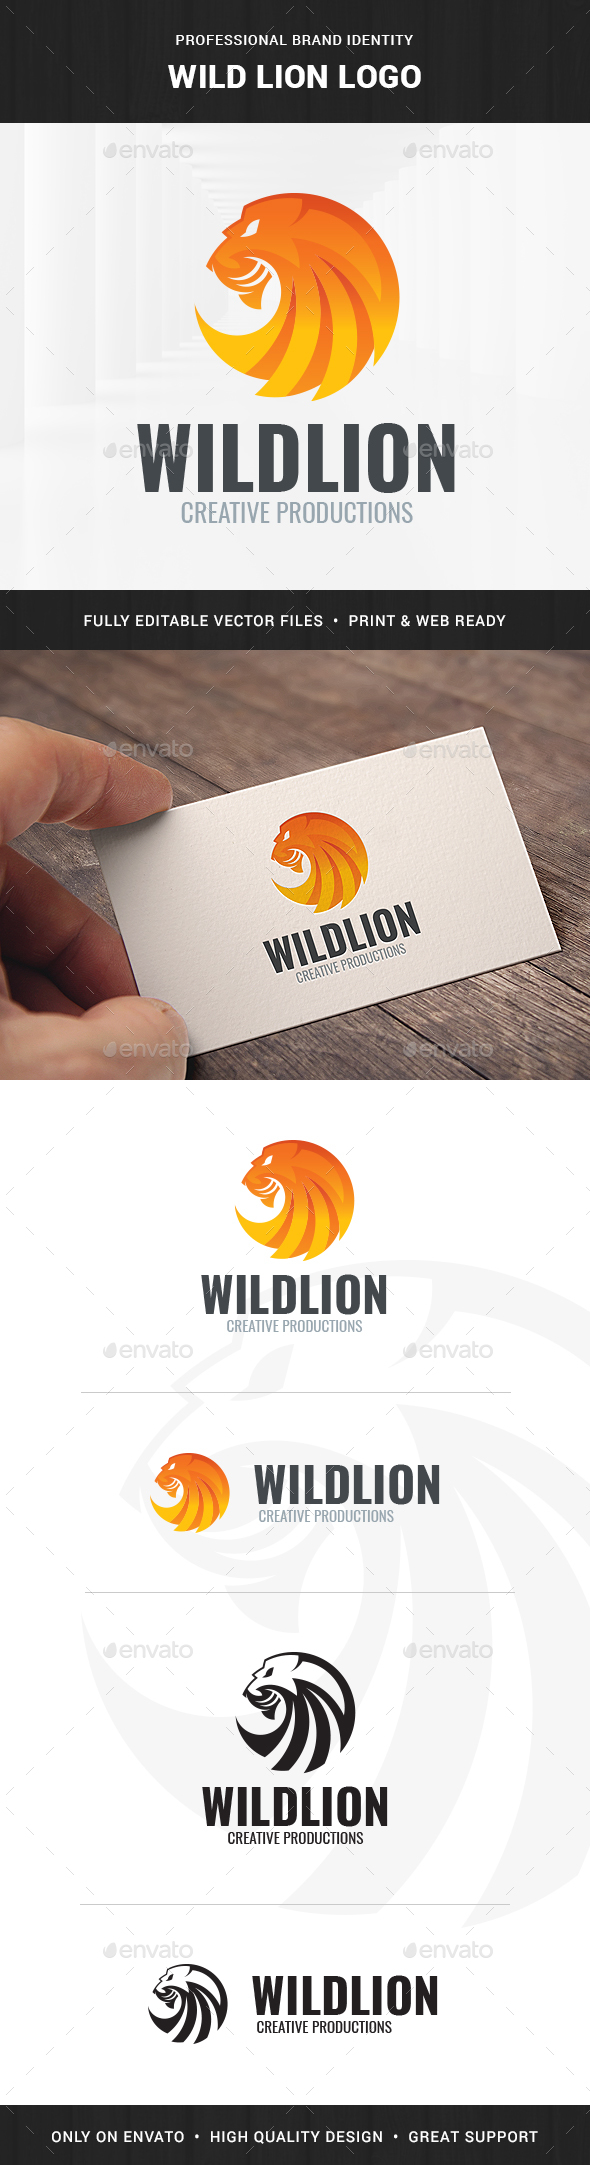 Wild Lion Logo Template